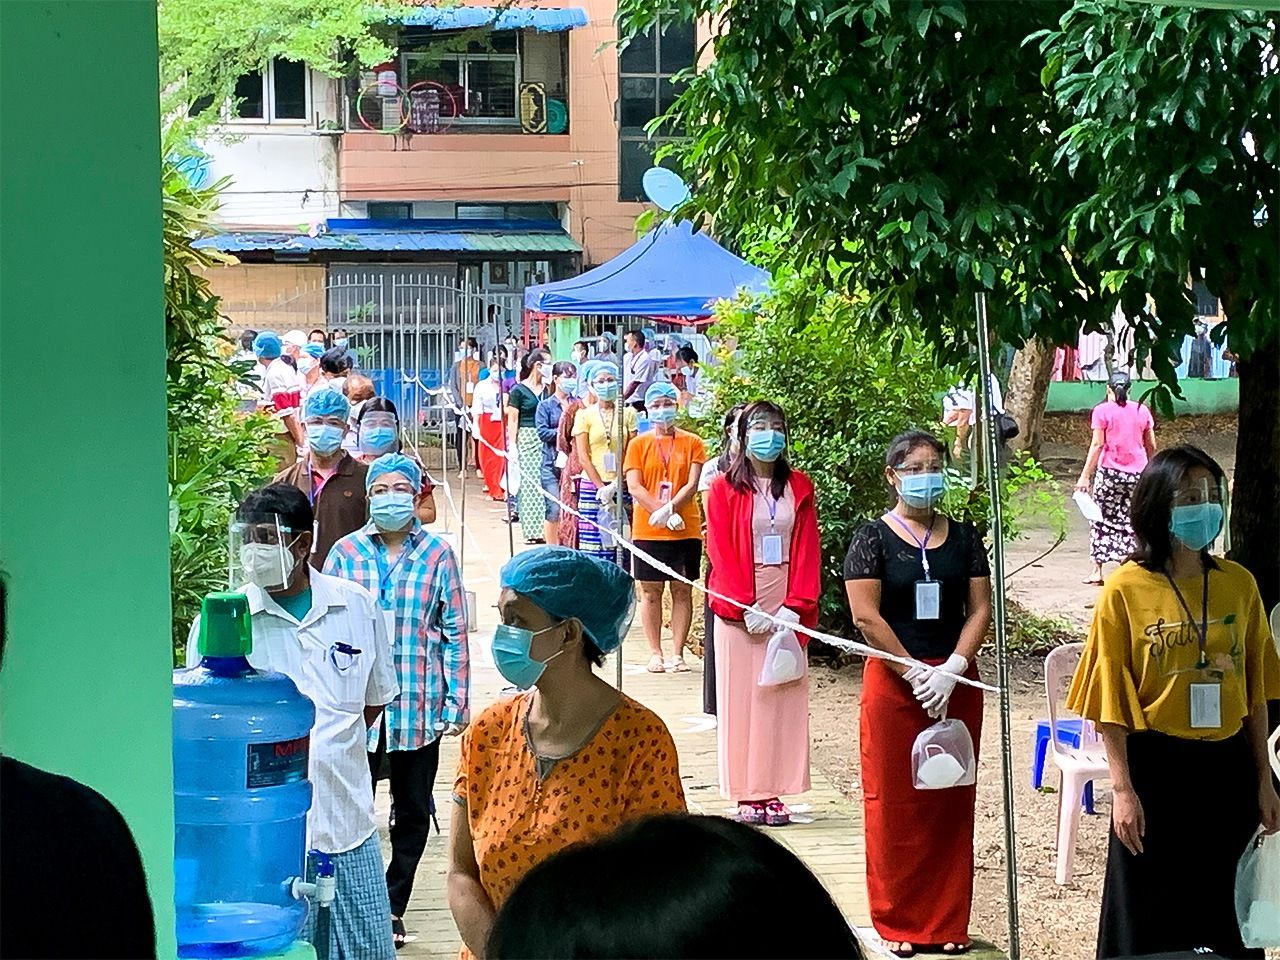 Voters maintain distance while waiting to cast their ballots as part of COVID-19 prevention measures. (Courtesy of the Nippon Foundation)